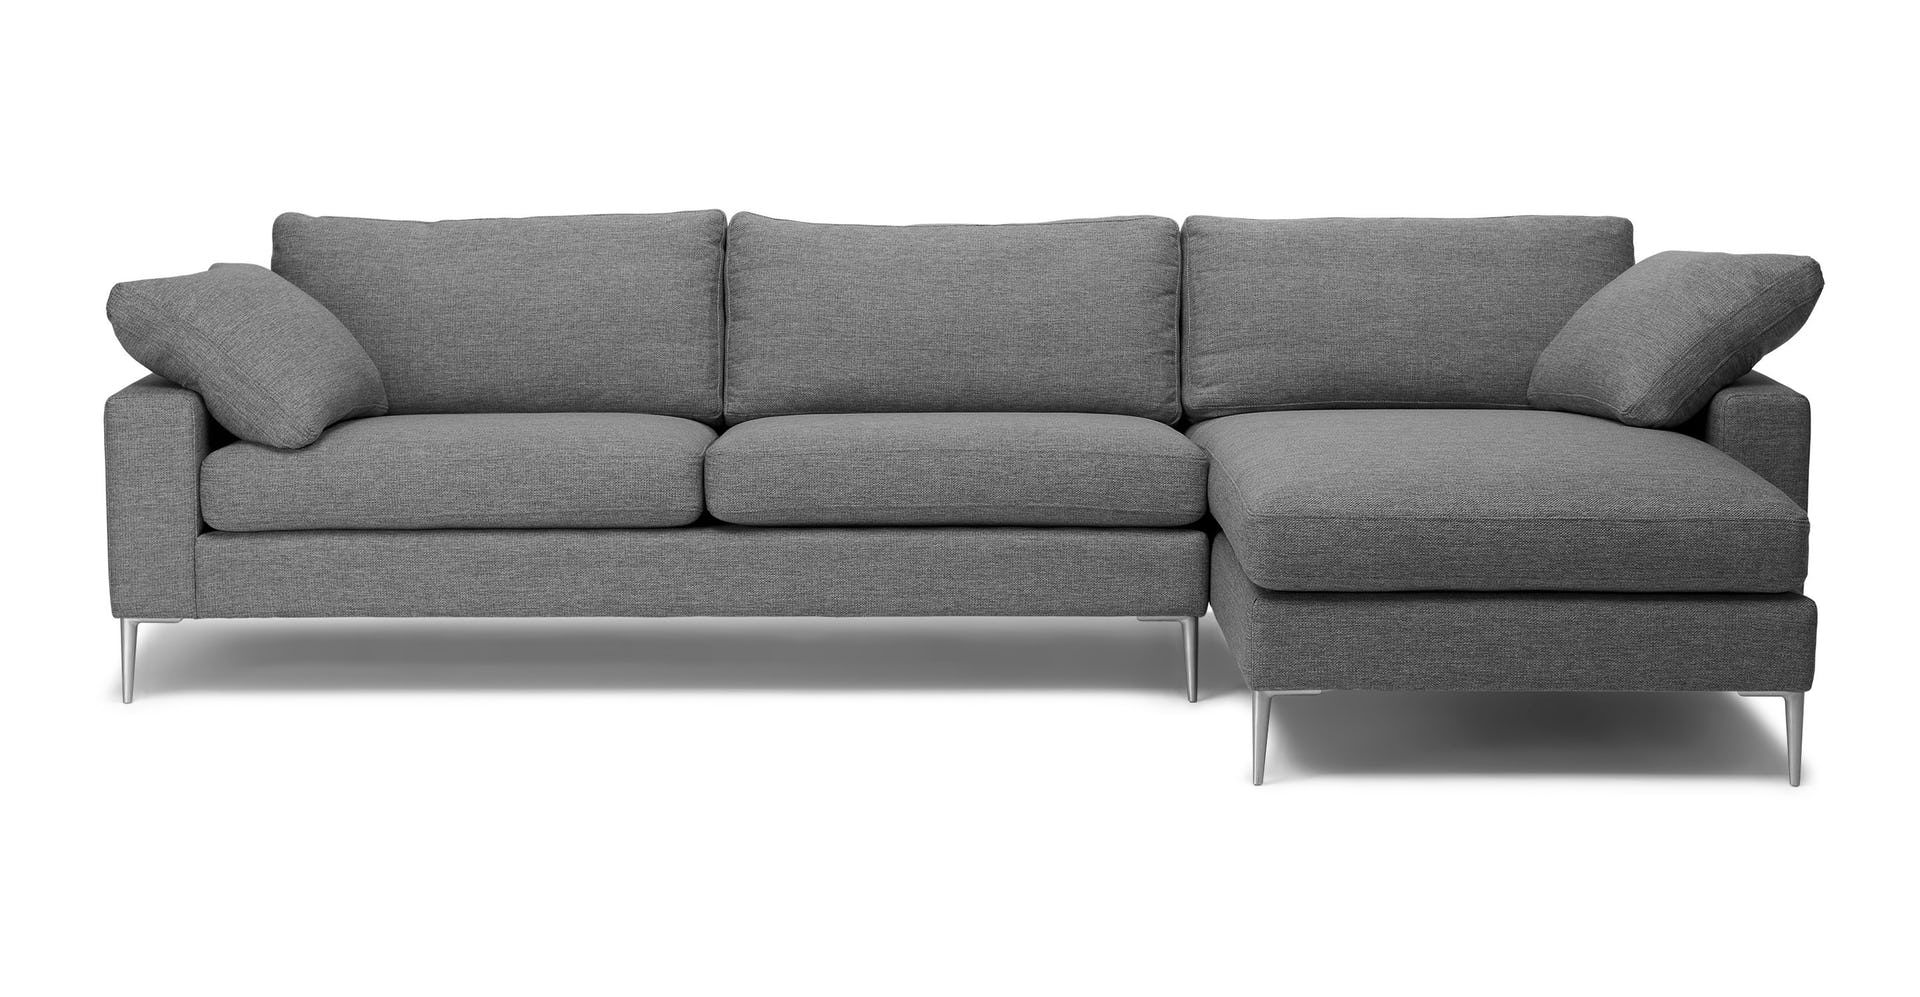 A Simple Hack That Makes An Ikea Sofa Look Like A Million Bucks Ikea Sofa Ikea Couch Sofa Makeover